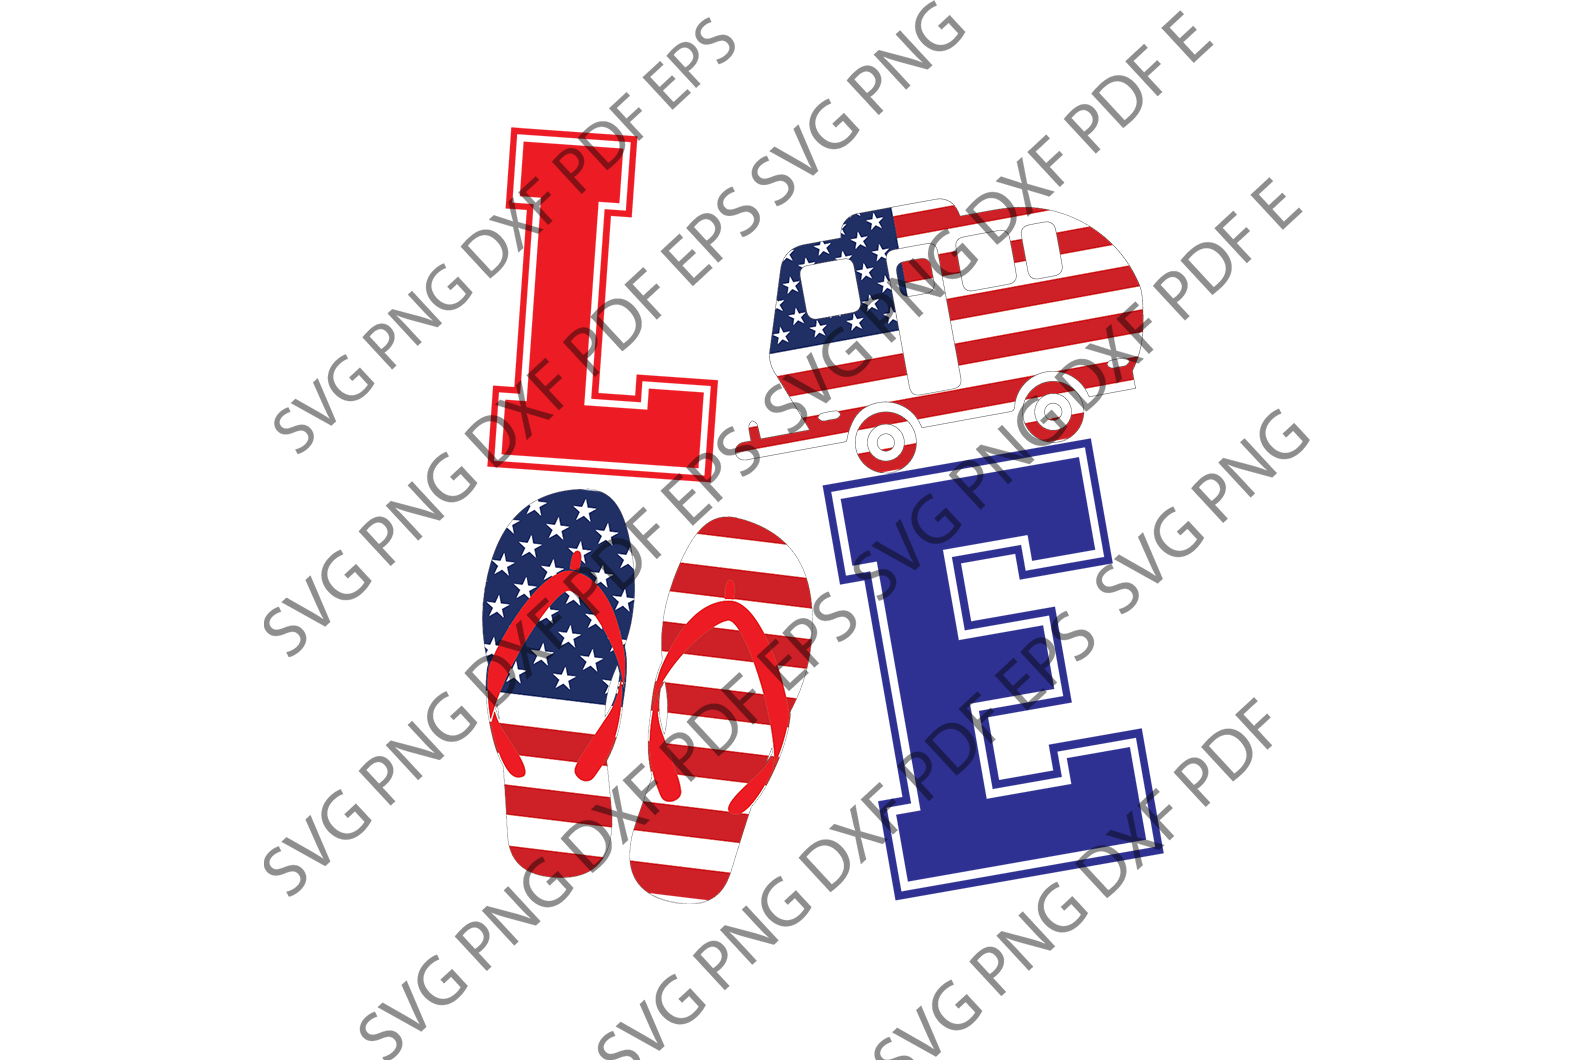 Love camping SVG,SVG Files For Silhouette, Files For Cricut, SVG, DXF, EPS, PNG Instant Download